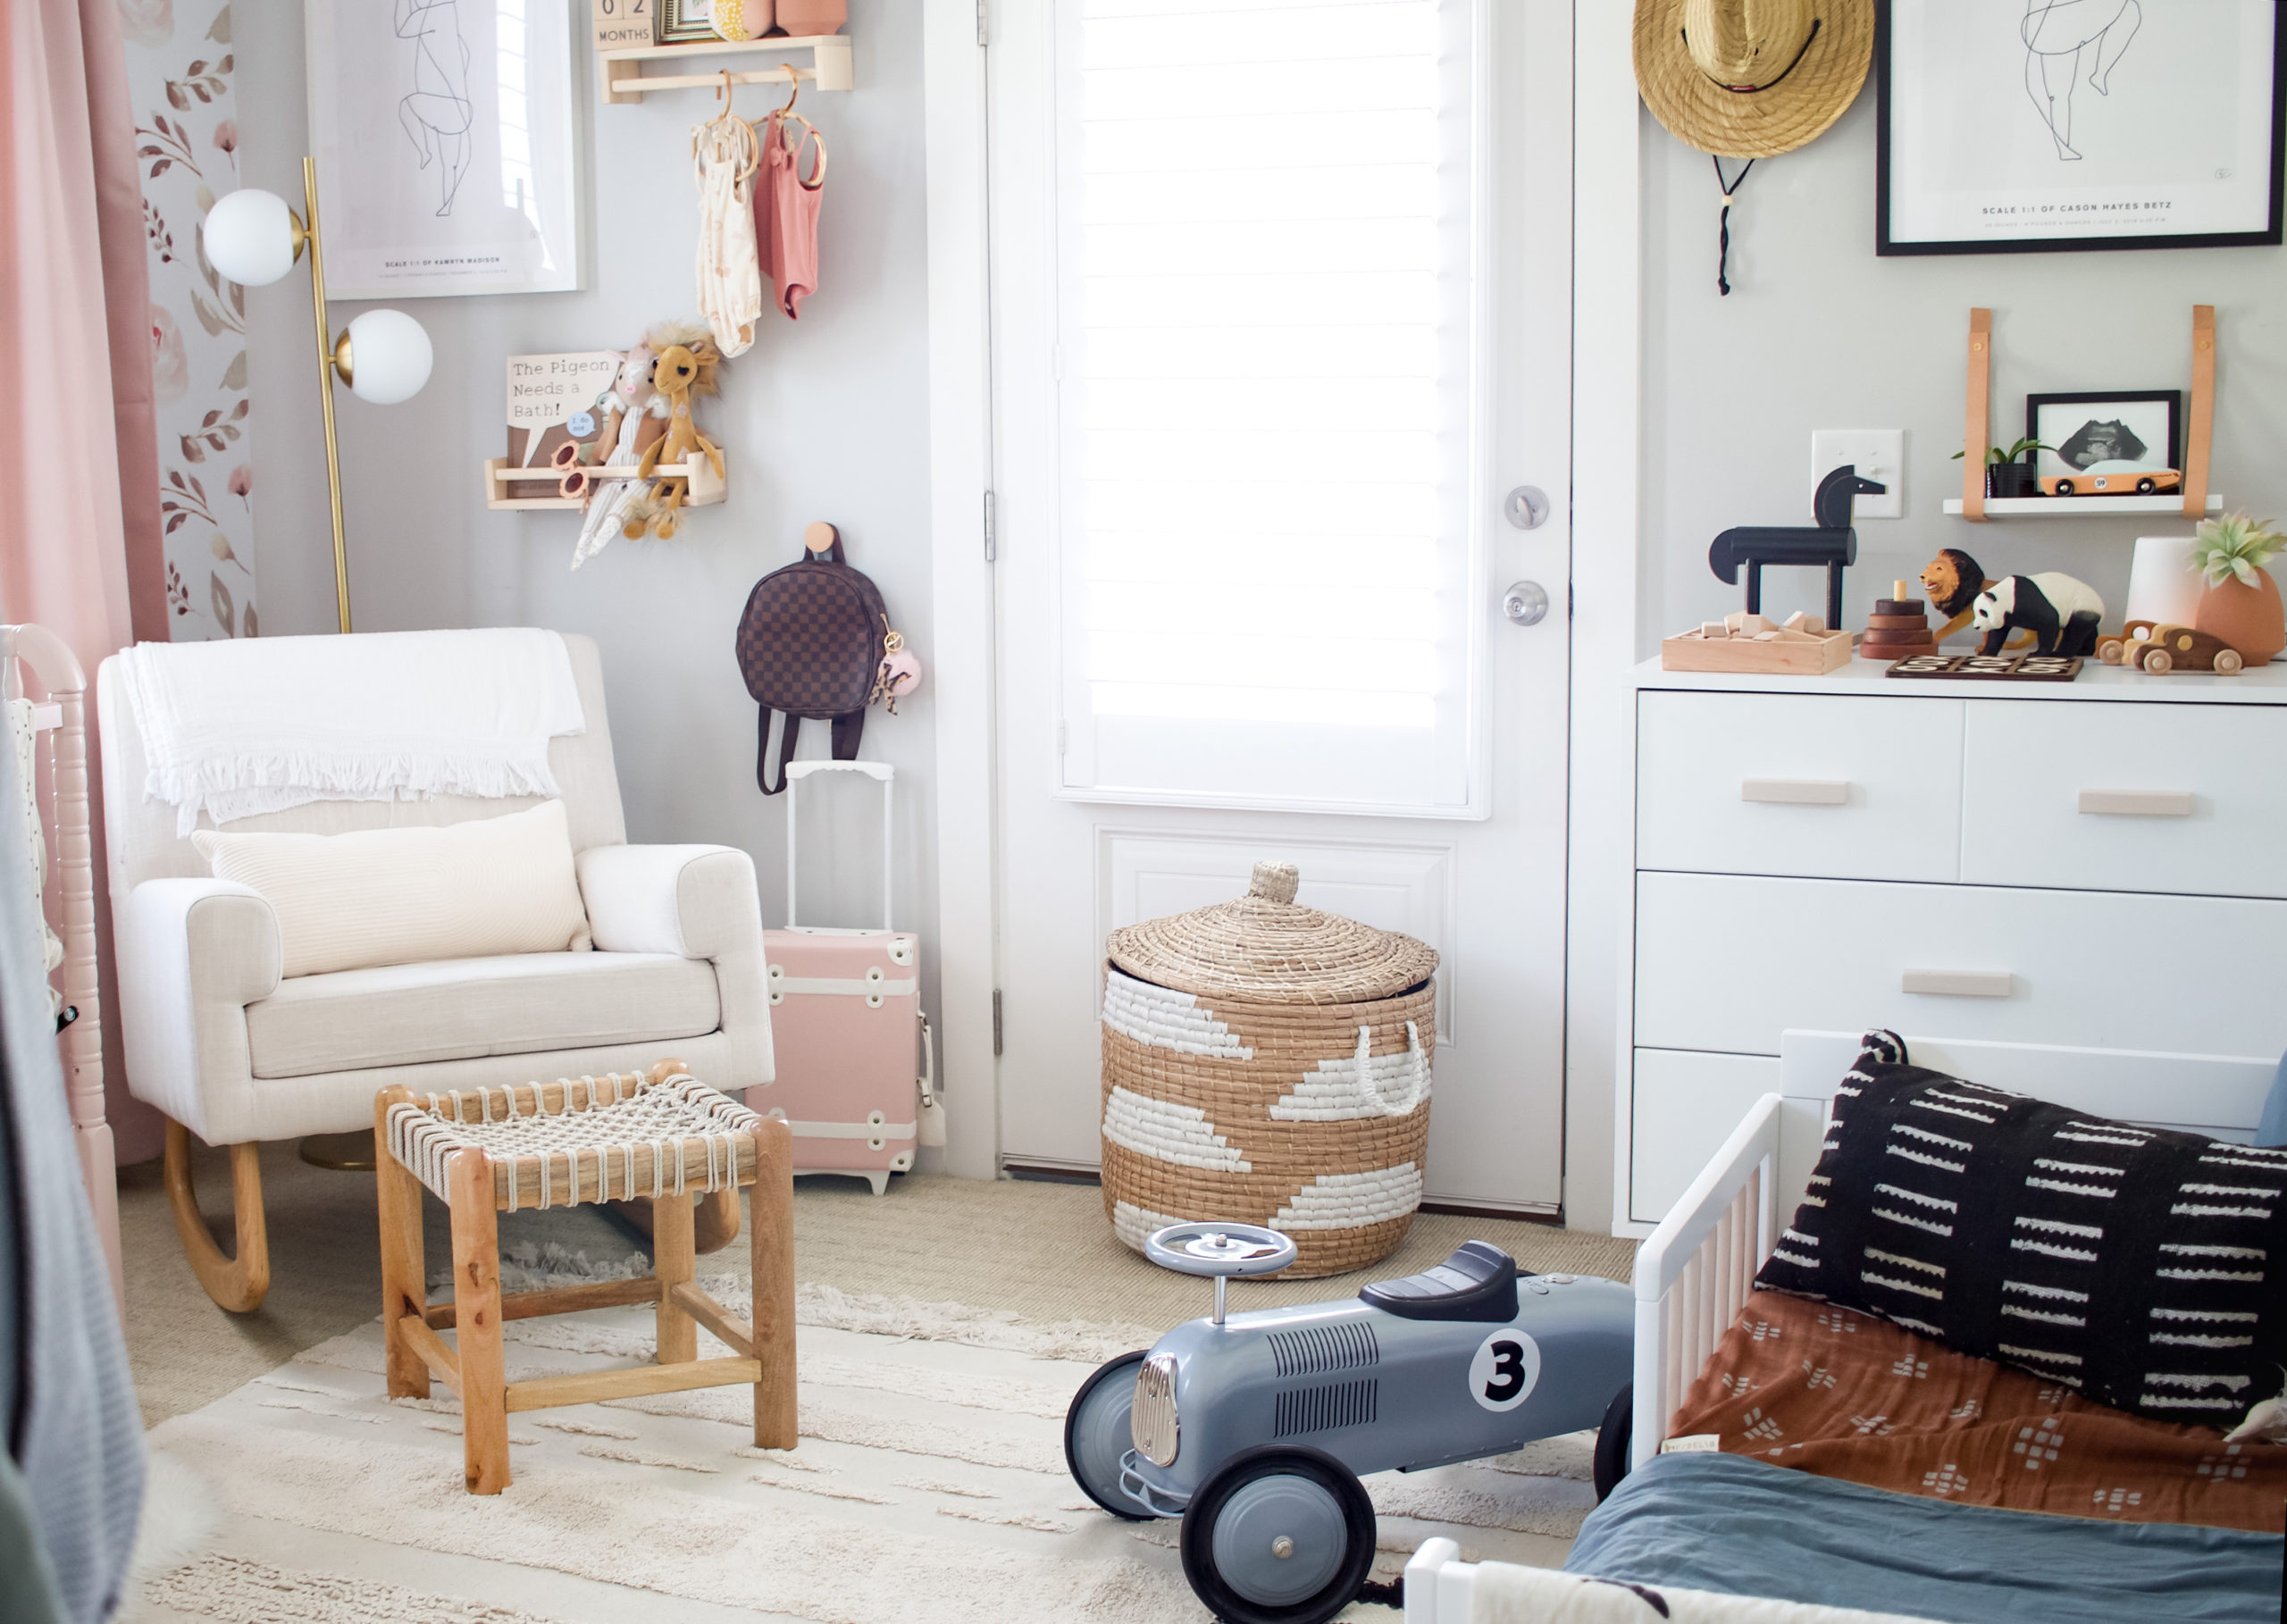 Design Transition in HIs and Her Nursery Design